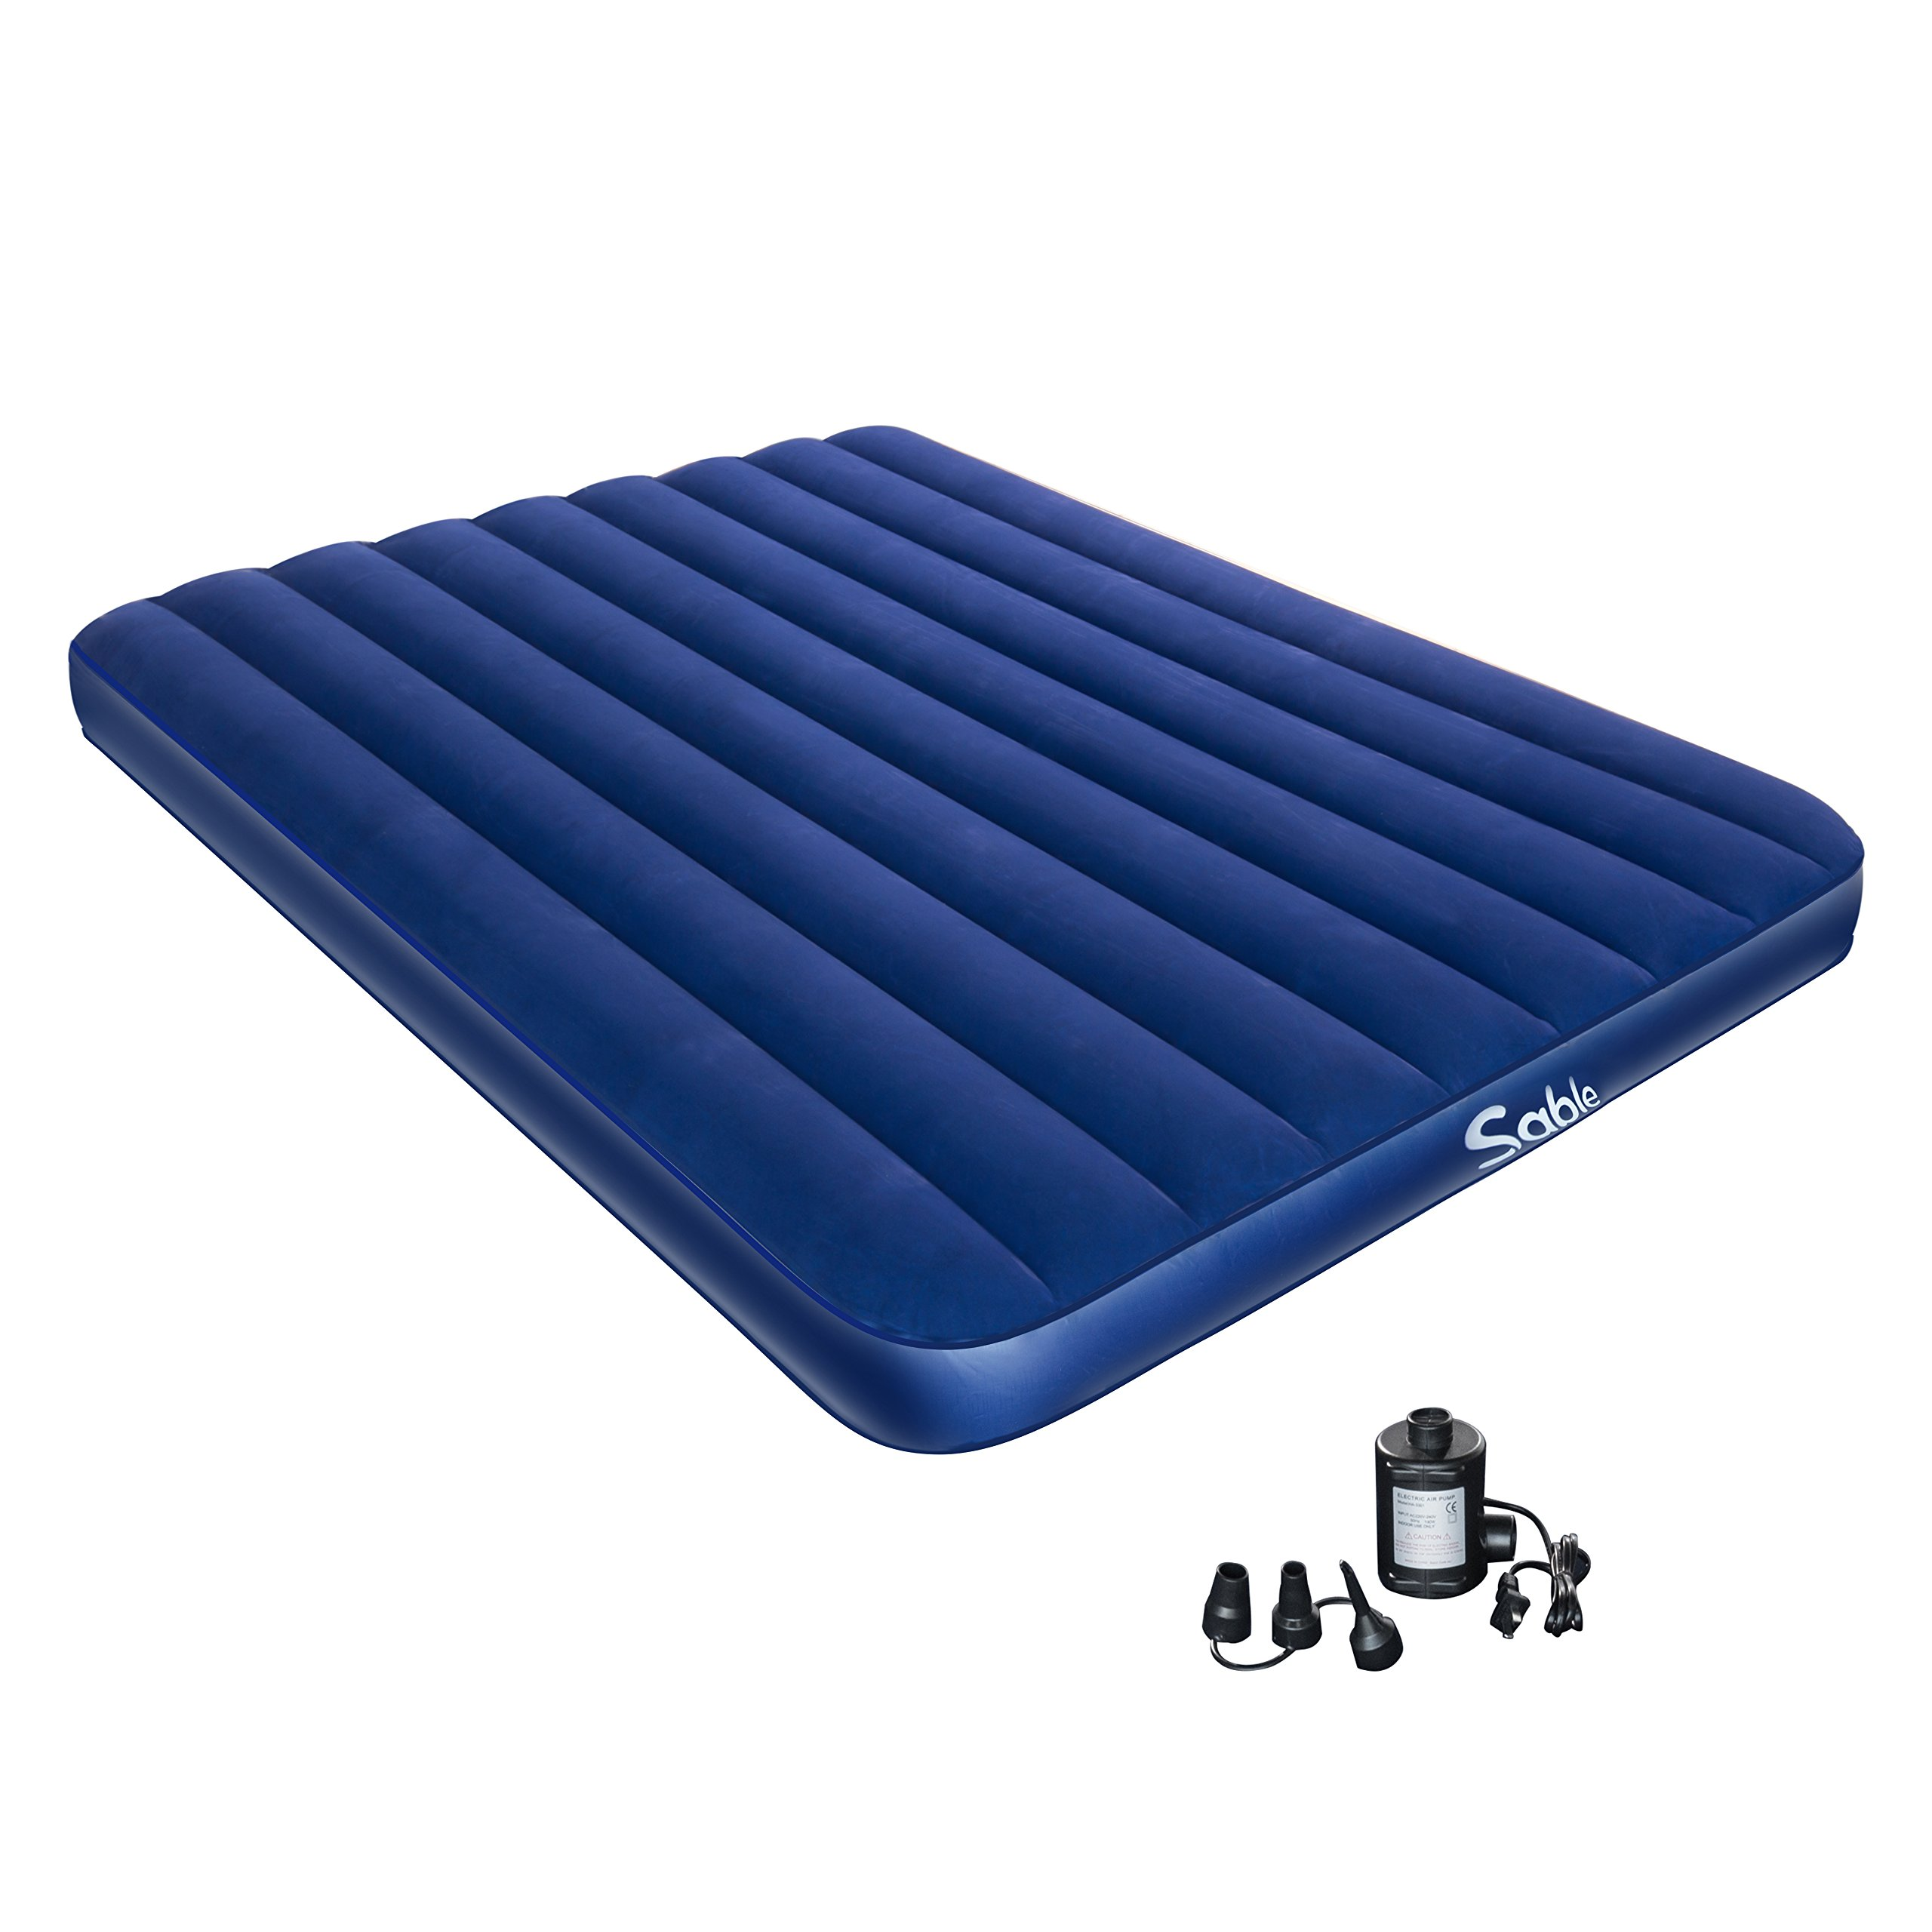 Sable Camping Air Mattress with Electric Air Pump, Inflatable Air Bed Blow up Bed for Car Tent Camping Hiking Backpacking - Height 8'', Queen Size